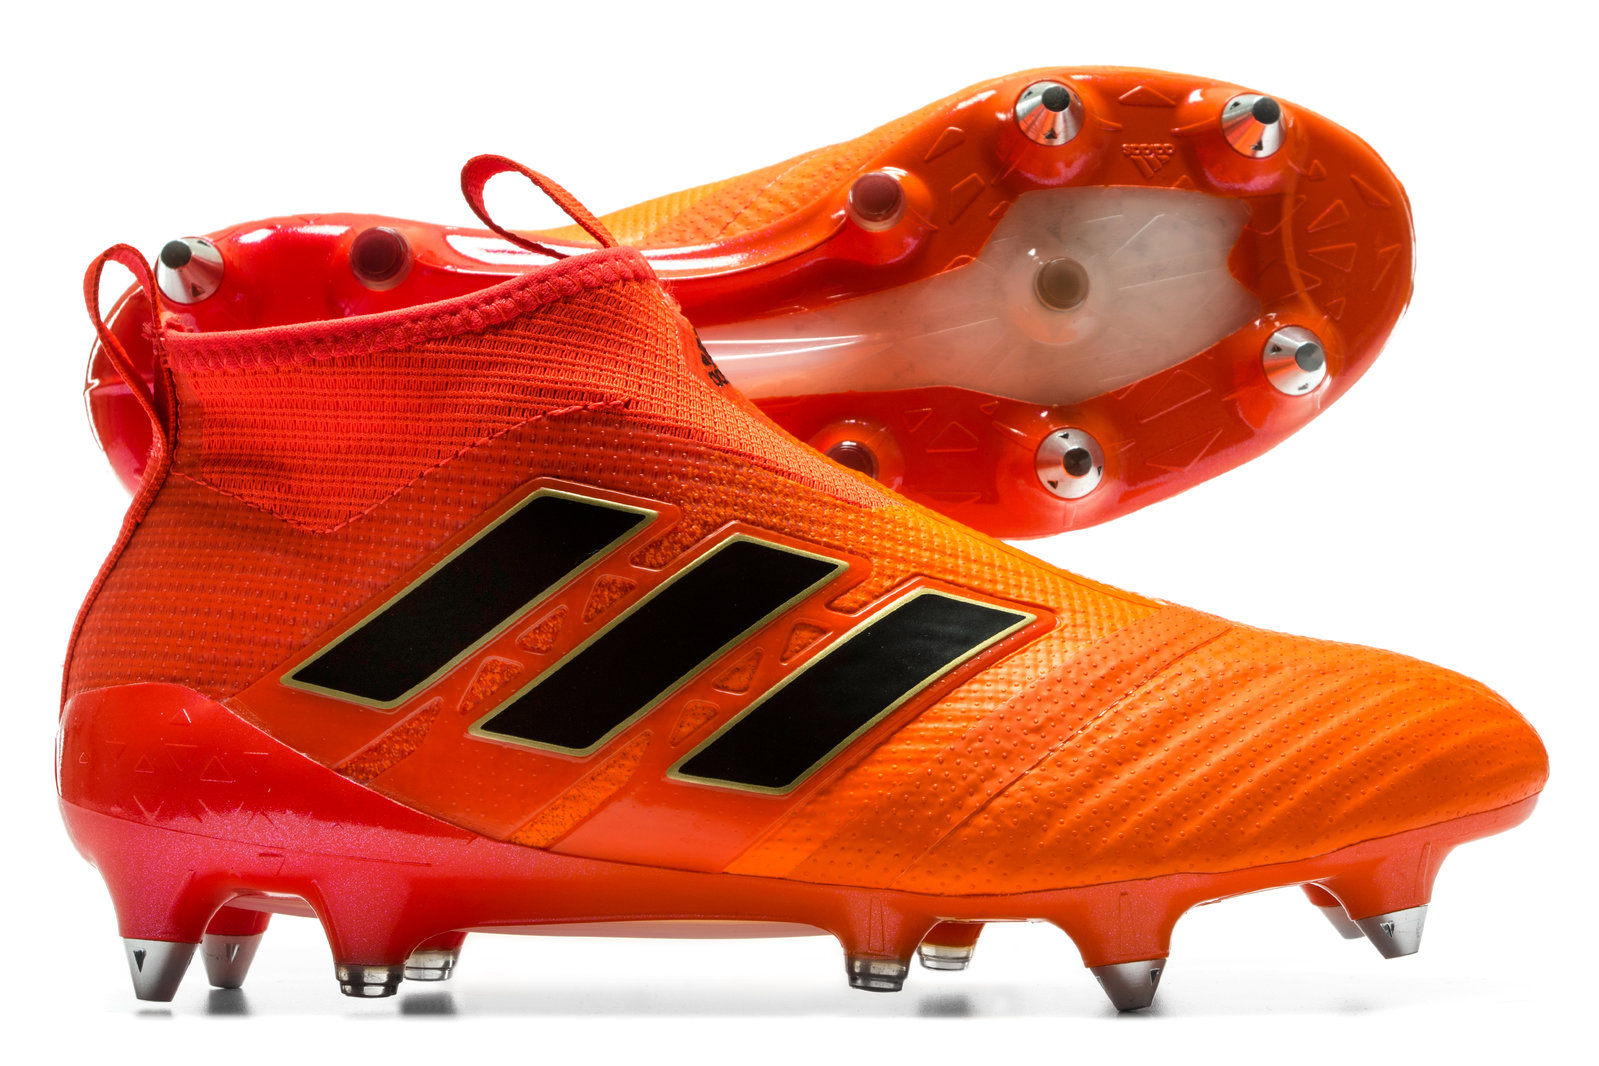 Image of Ace 17+ Purecontrol SG Football Boots